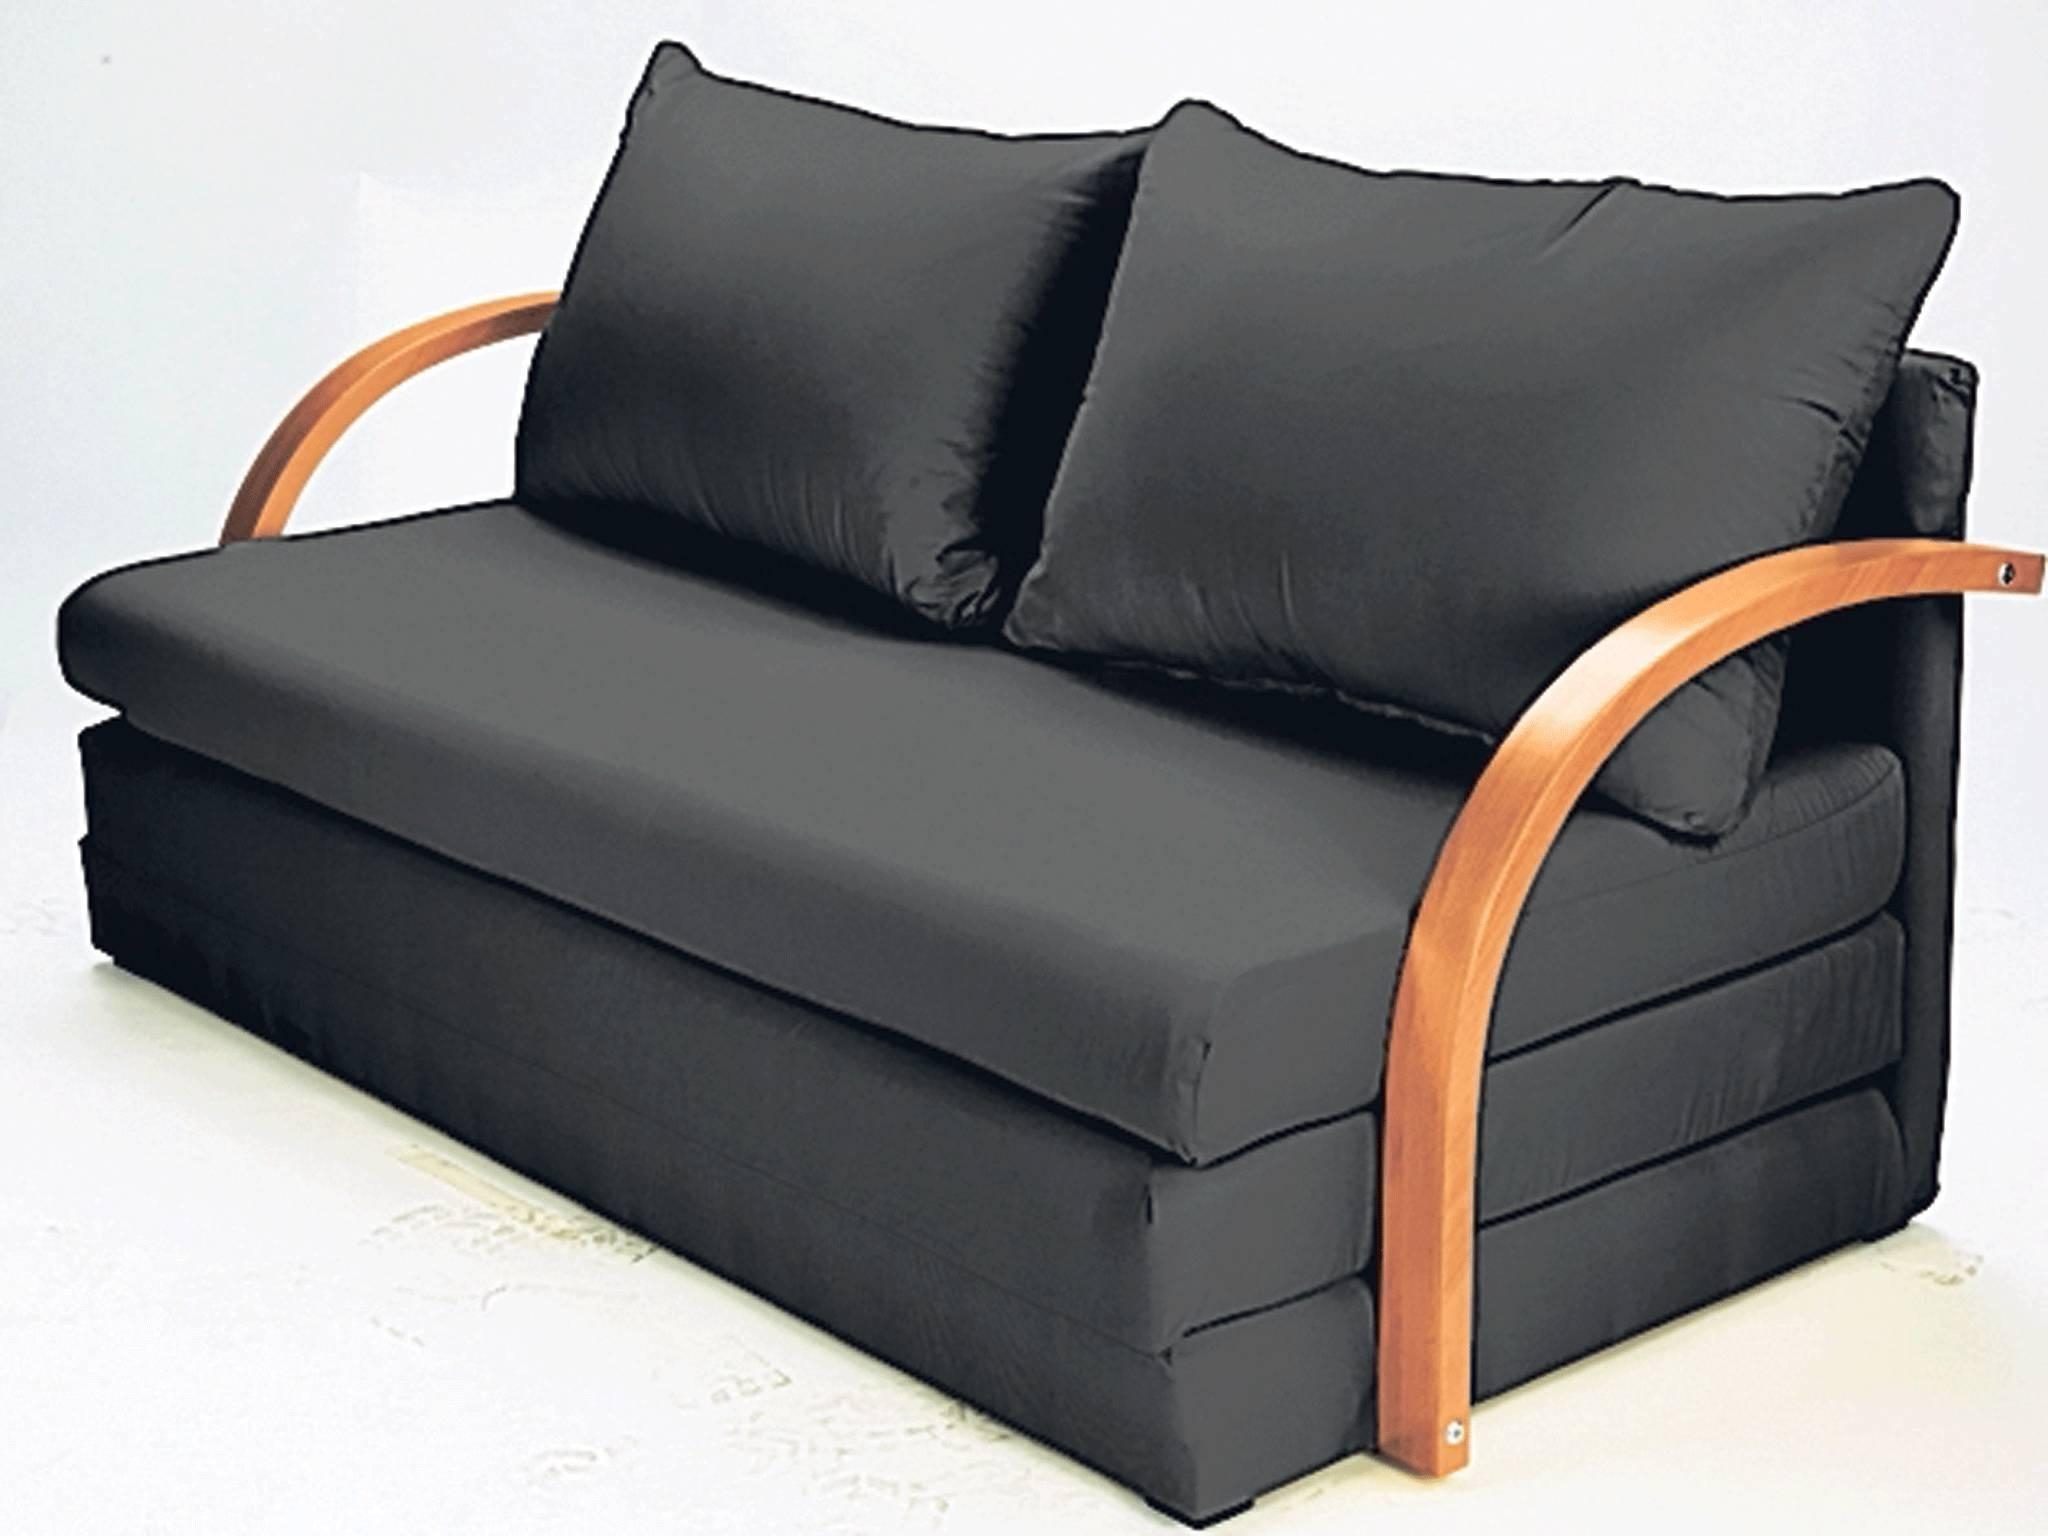 Modern Sofas That Turn Into Beds | Homesfeed Regarding Giant Sofa Beds (Image 16 of 20)